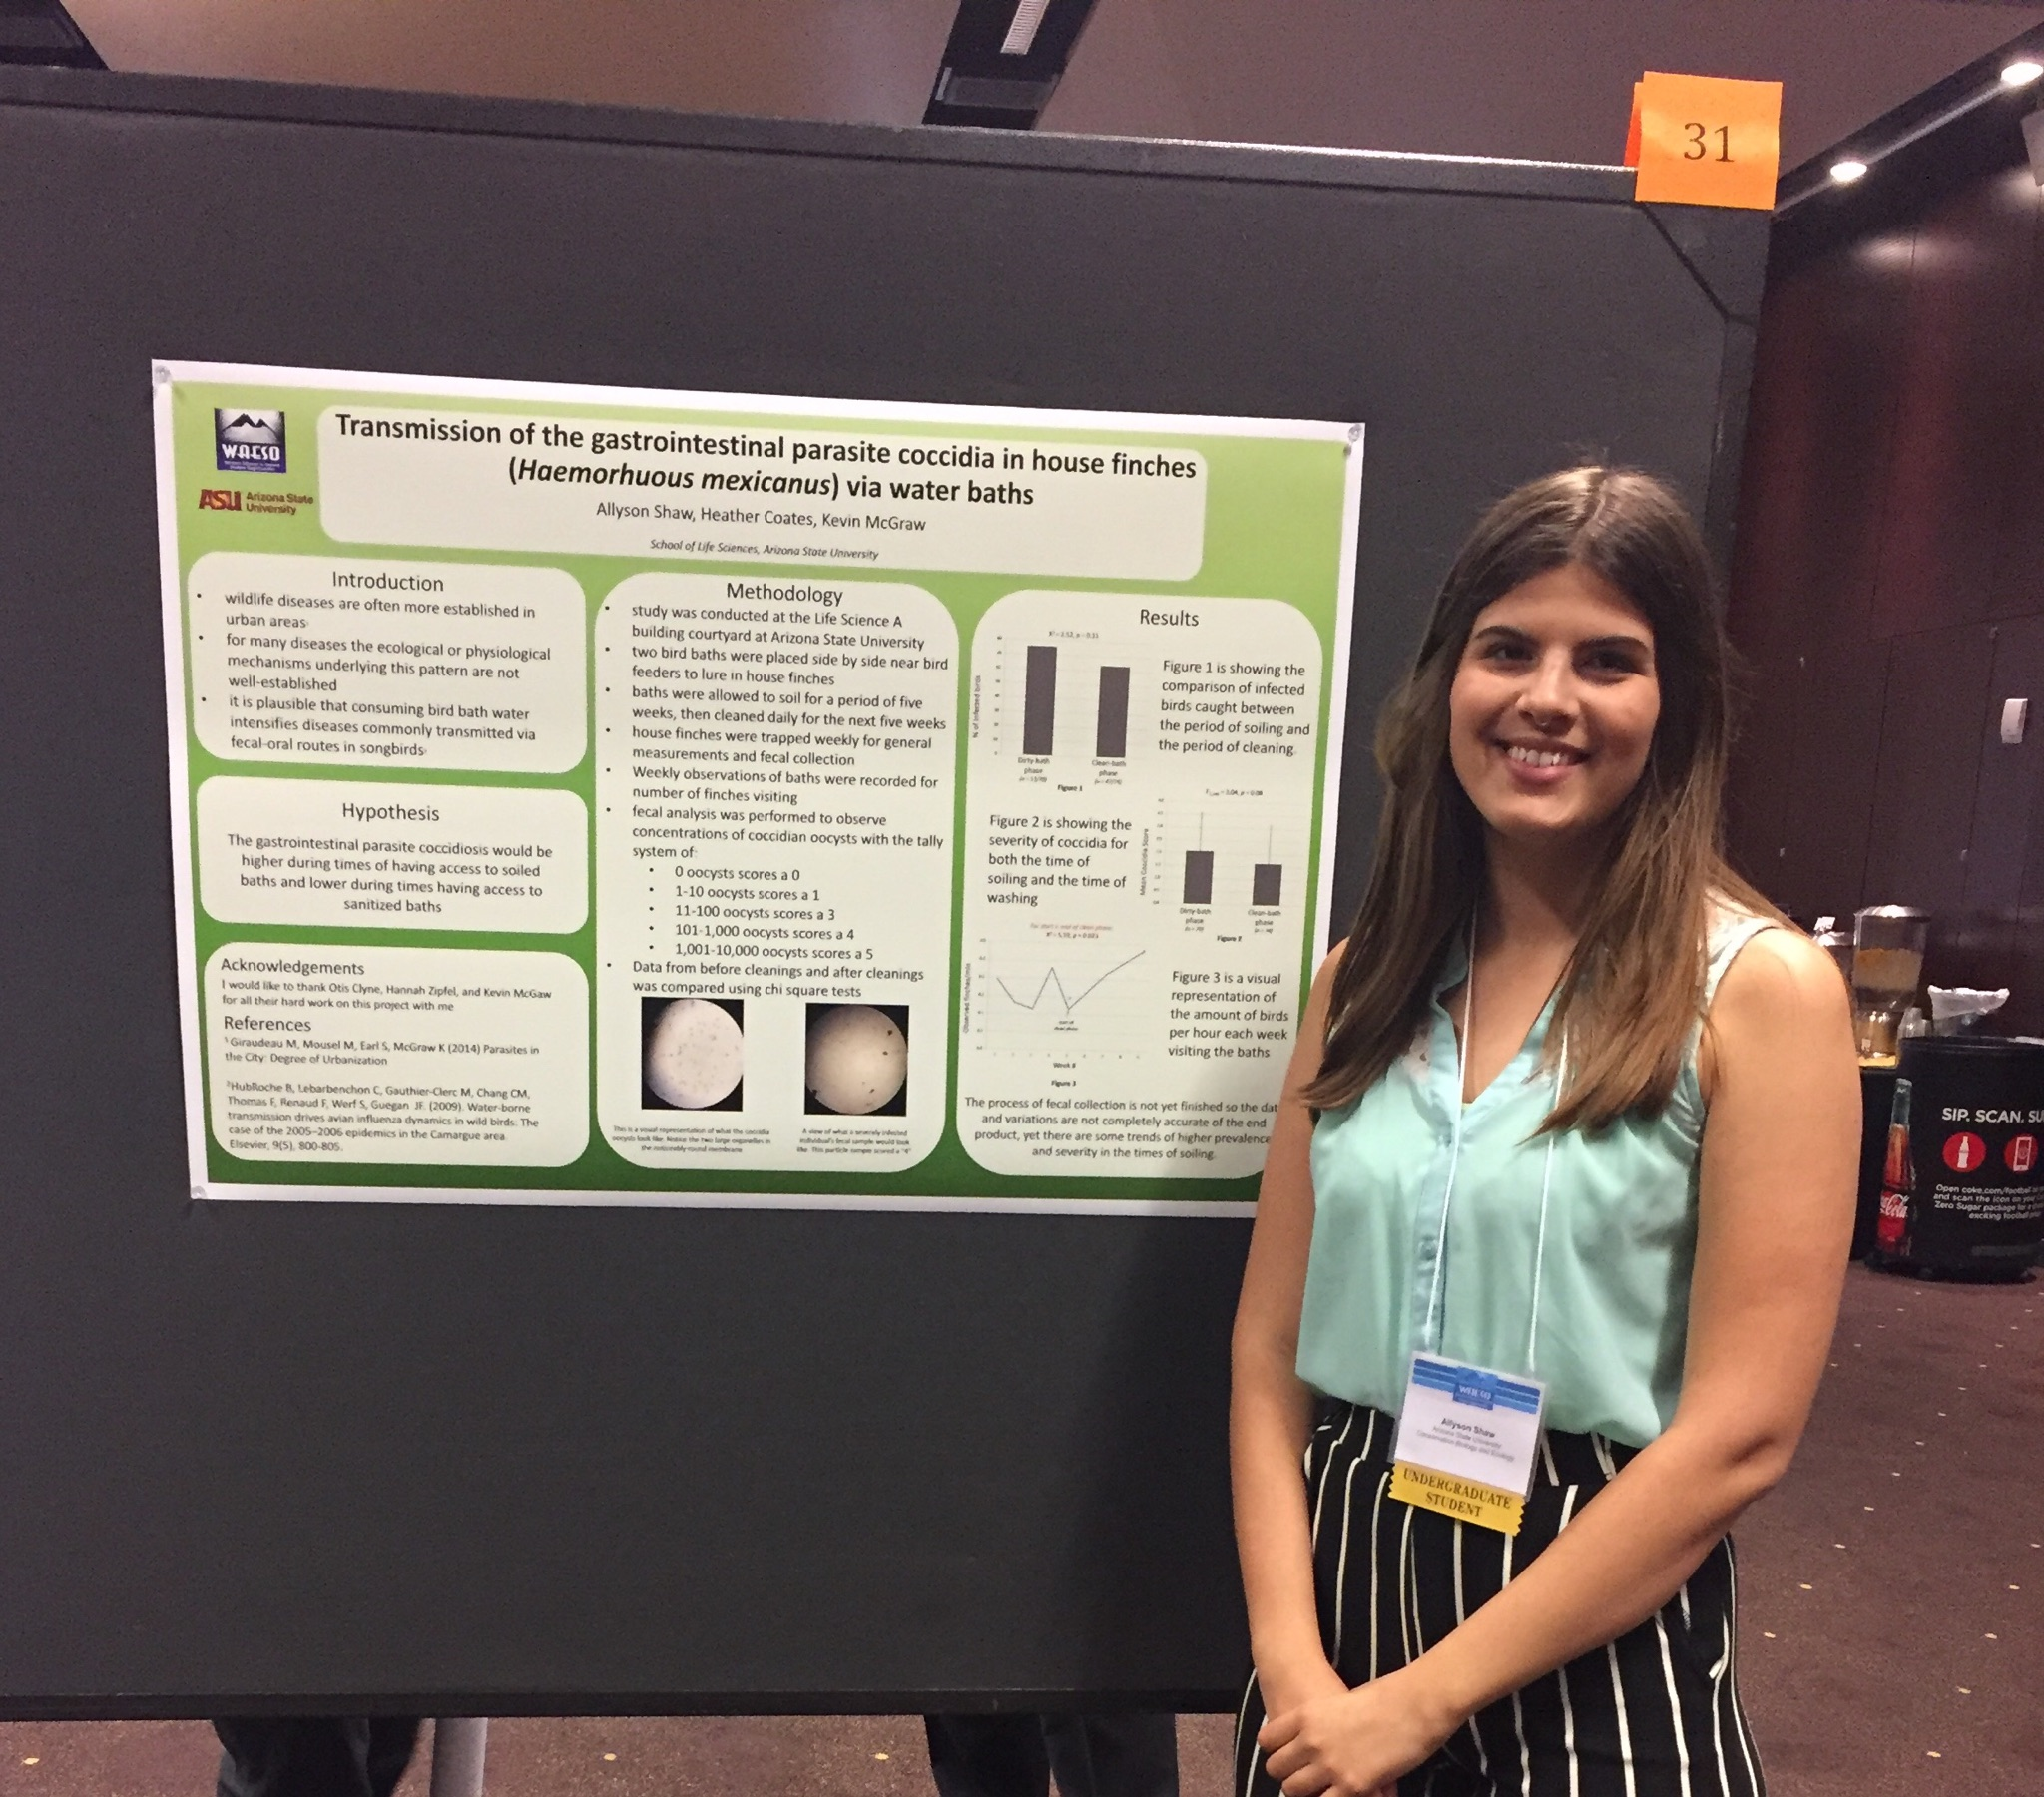 Lab ✿ Conbio Alliance Student Eco Allyson Hall At 2018 Poster Presents Asu Symposium The Shaw Waeso amp; Research